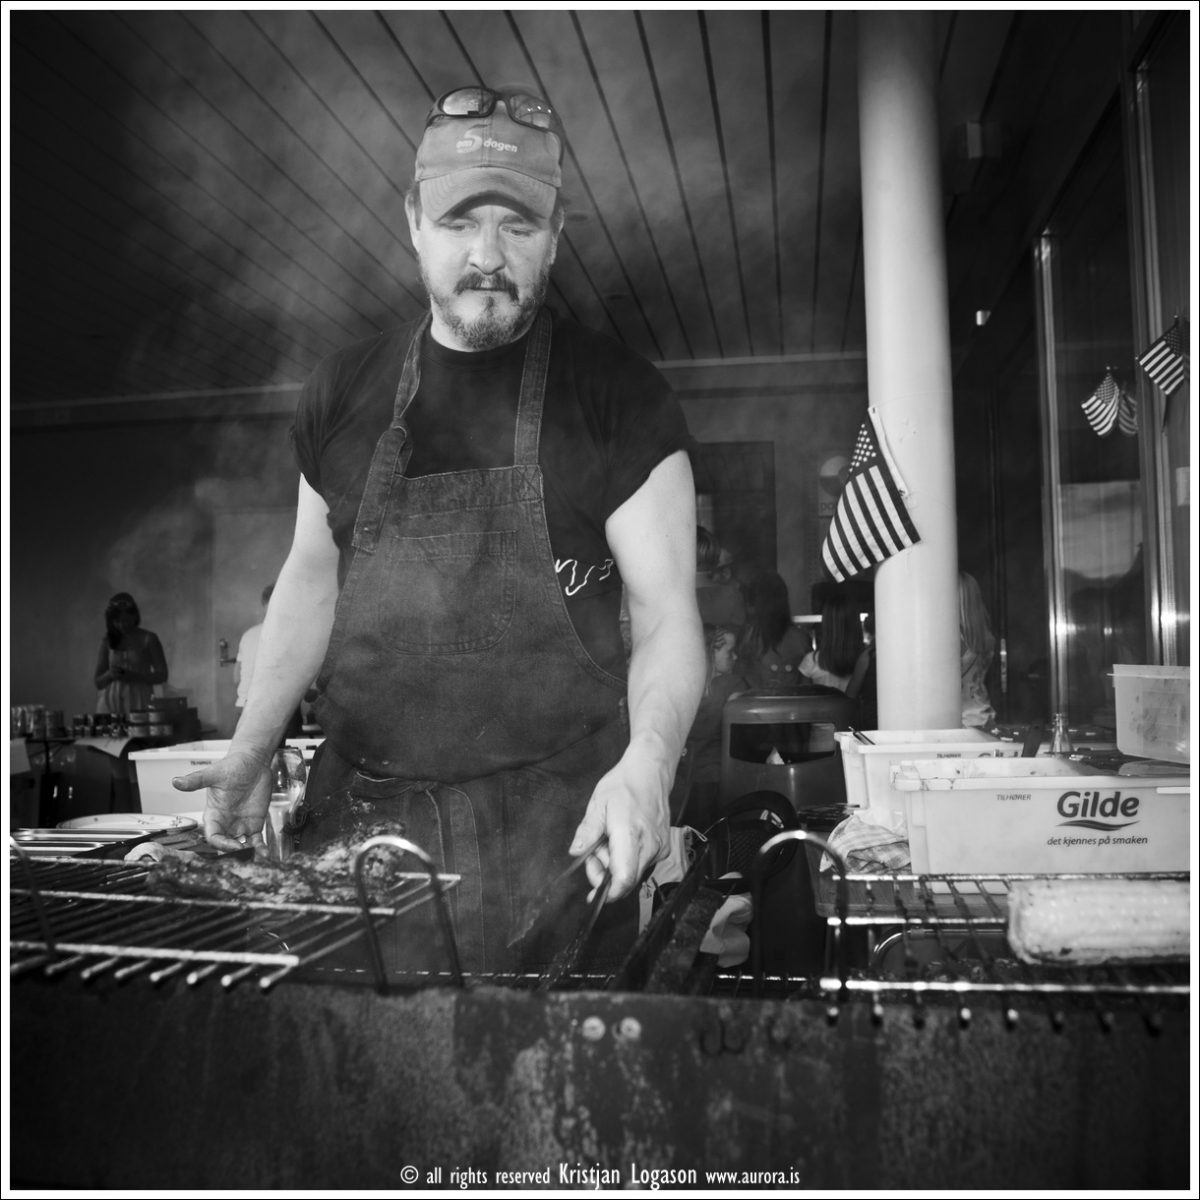 the chef, Stewart grilling meat, Leikanger, Norway